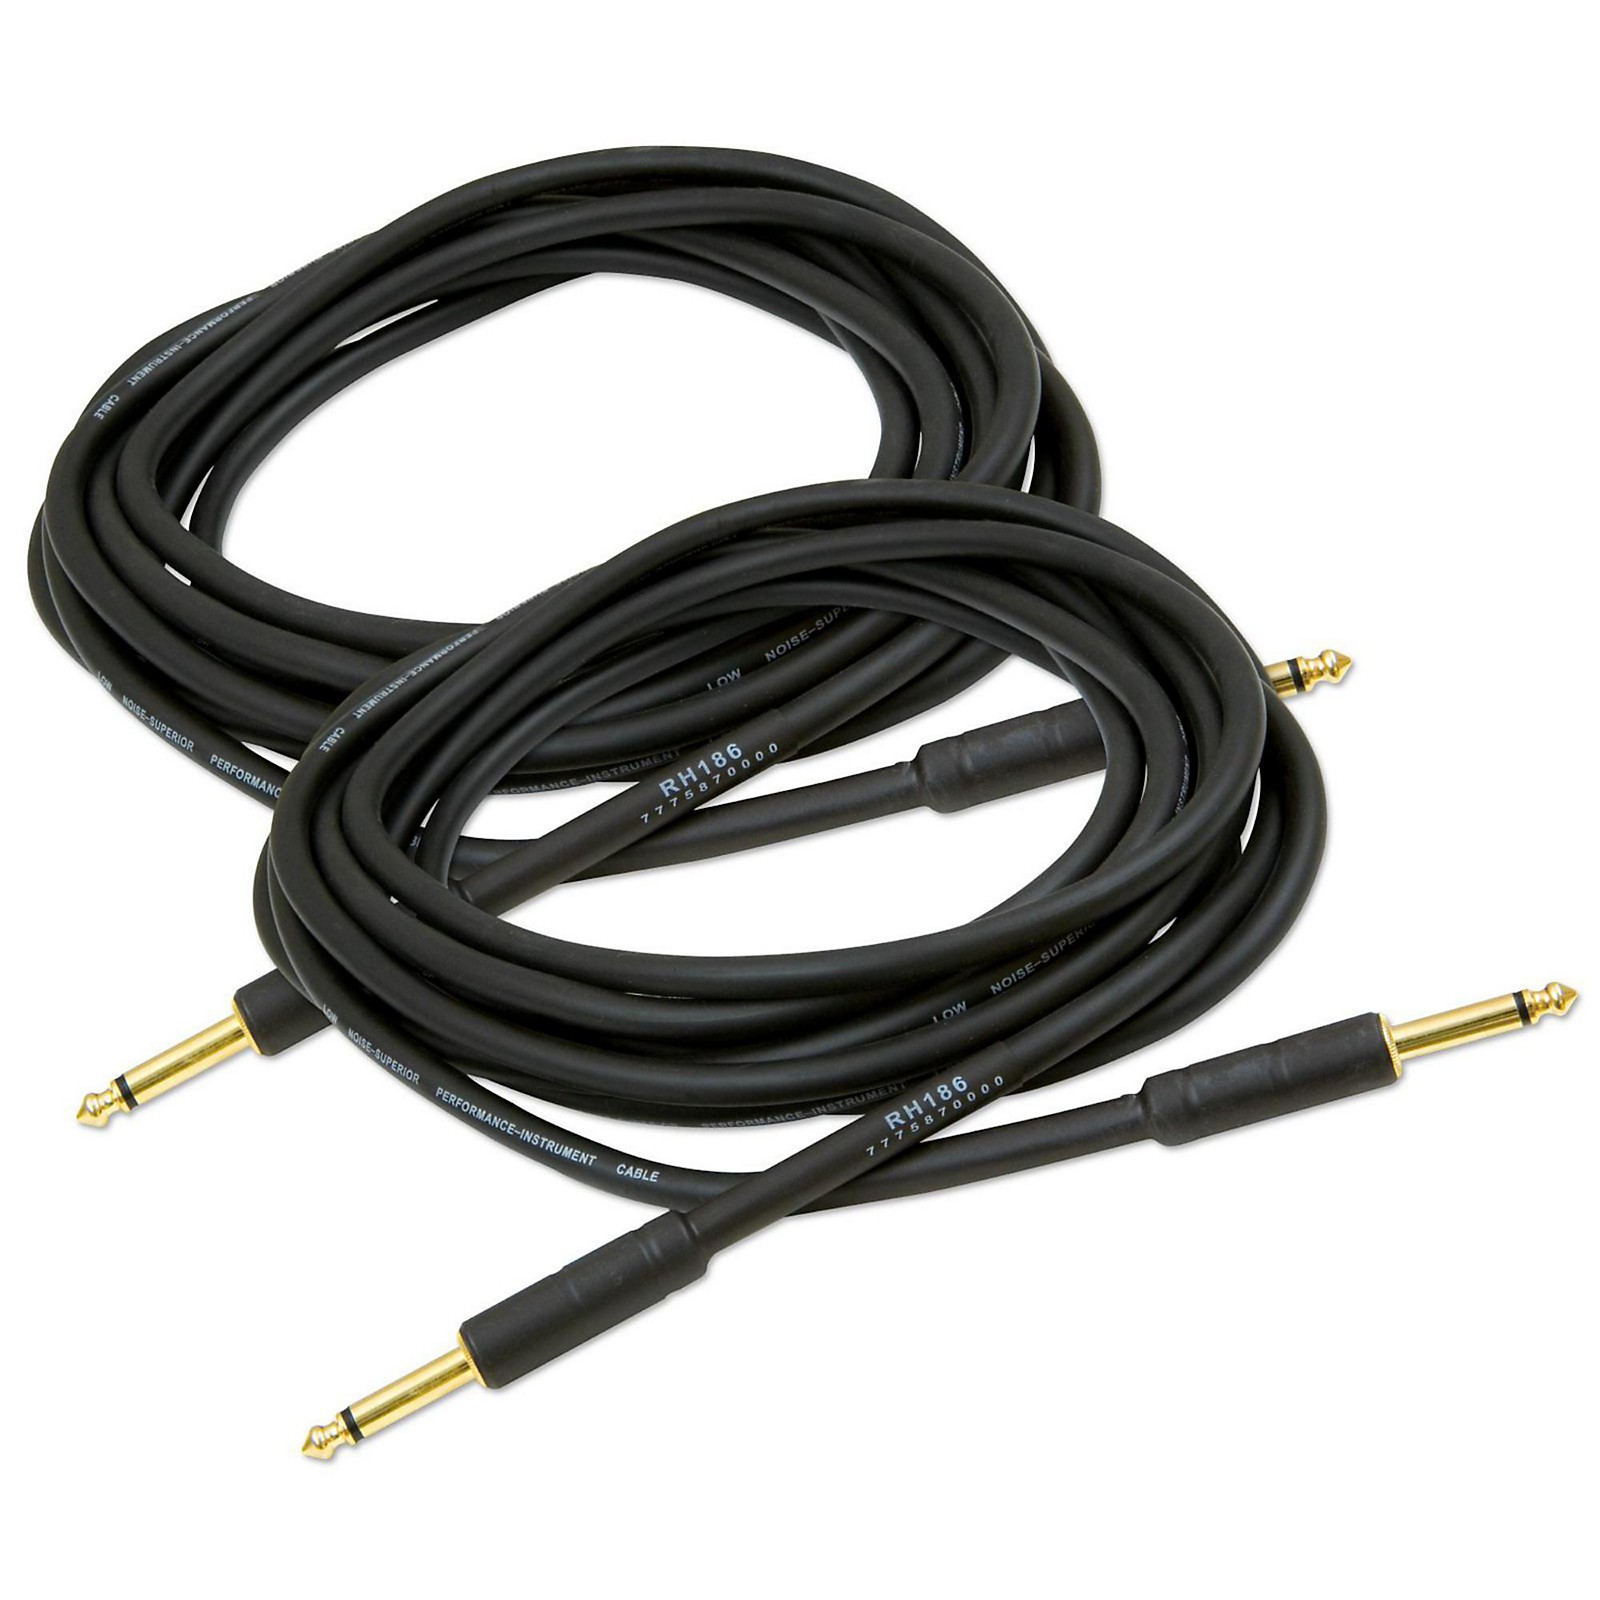 Musician's Gear Standard Instrument Cable 20 Ft. 2-Pack